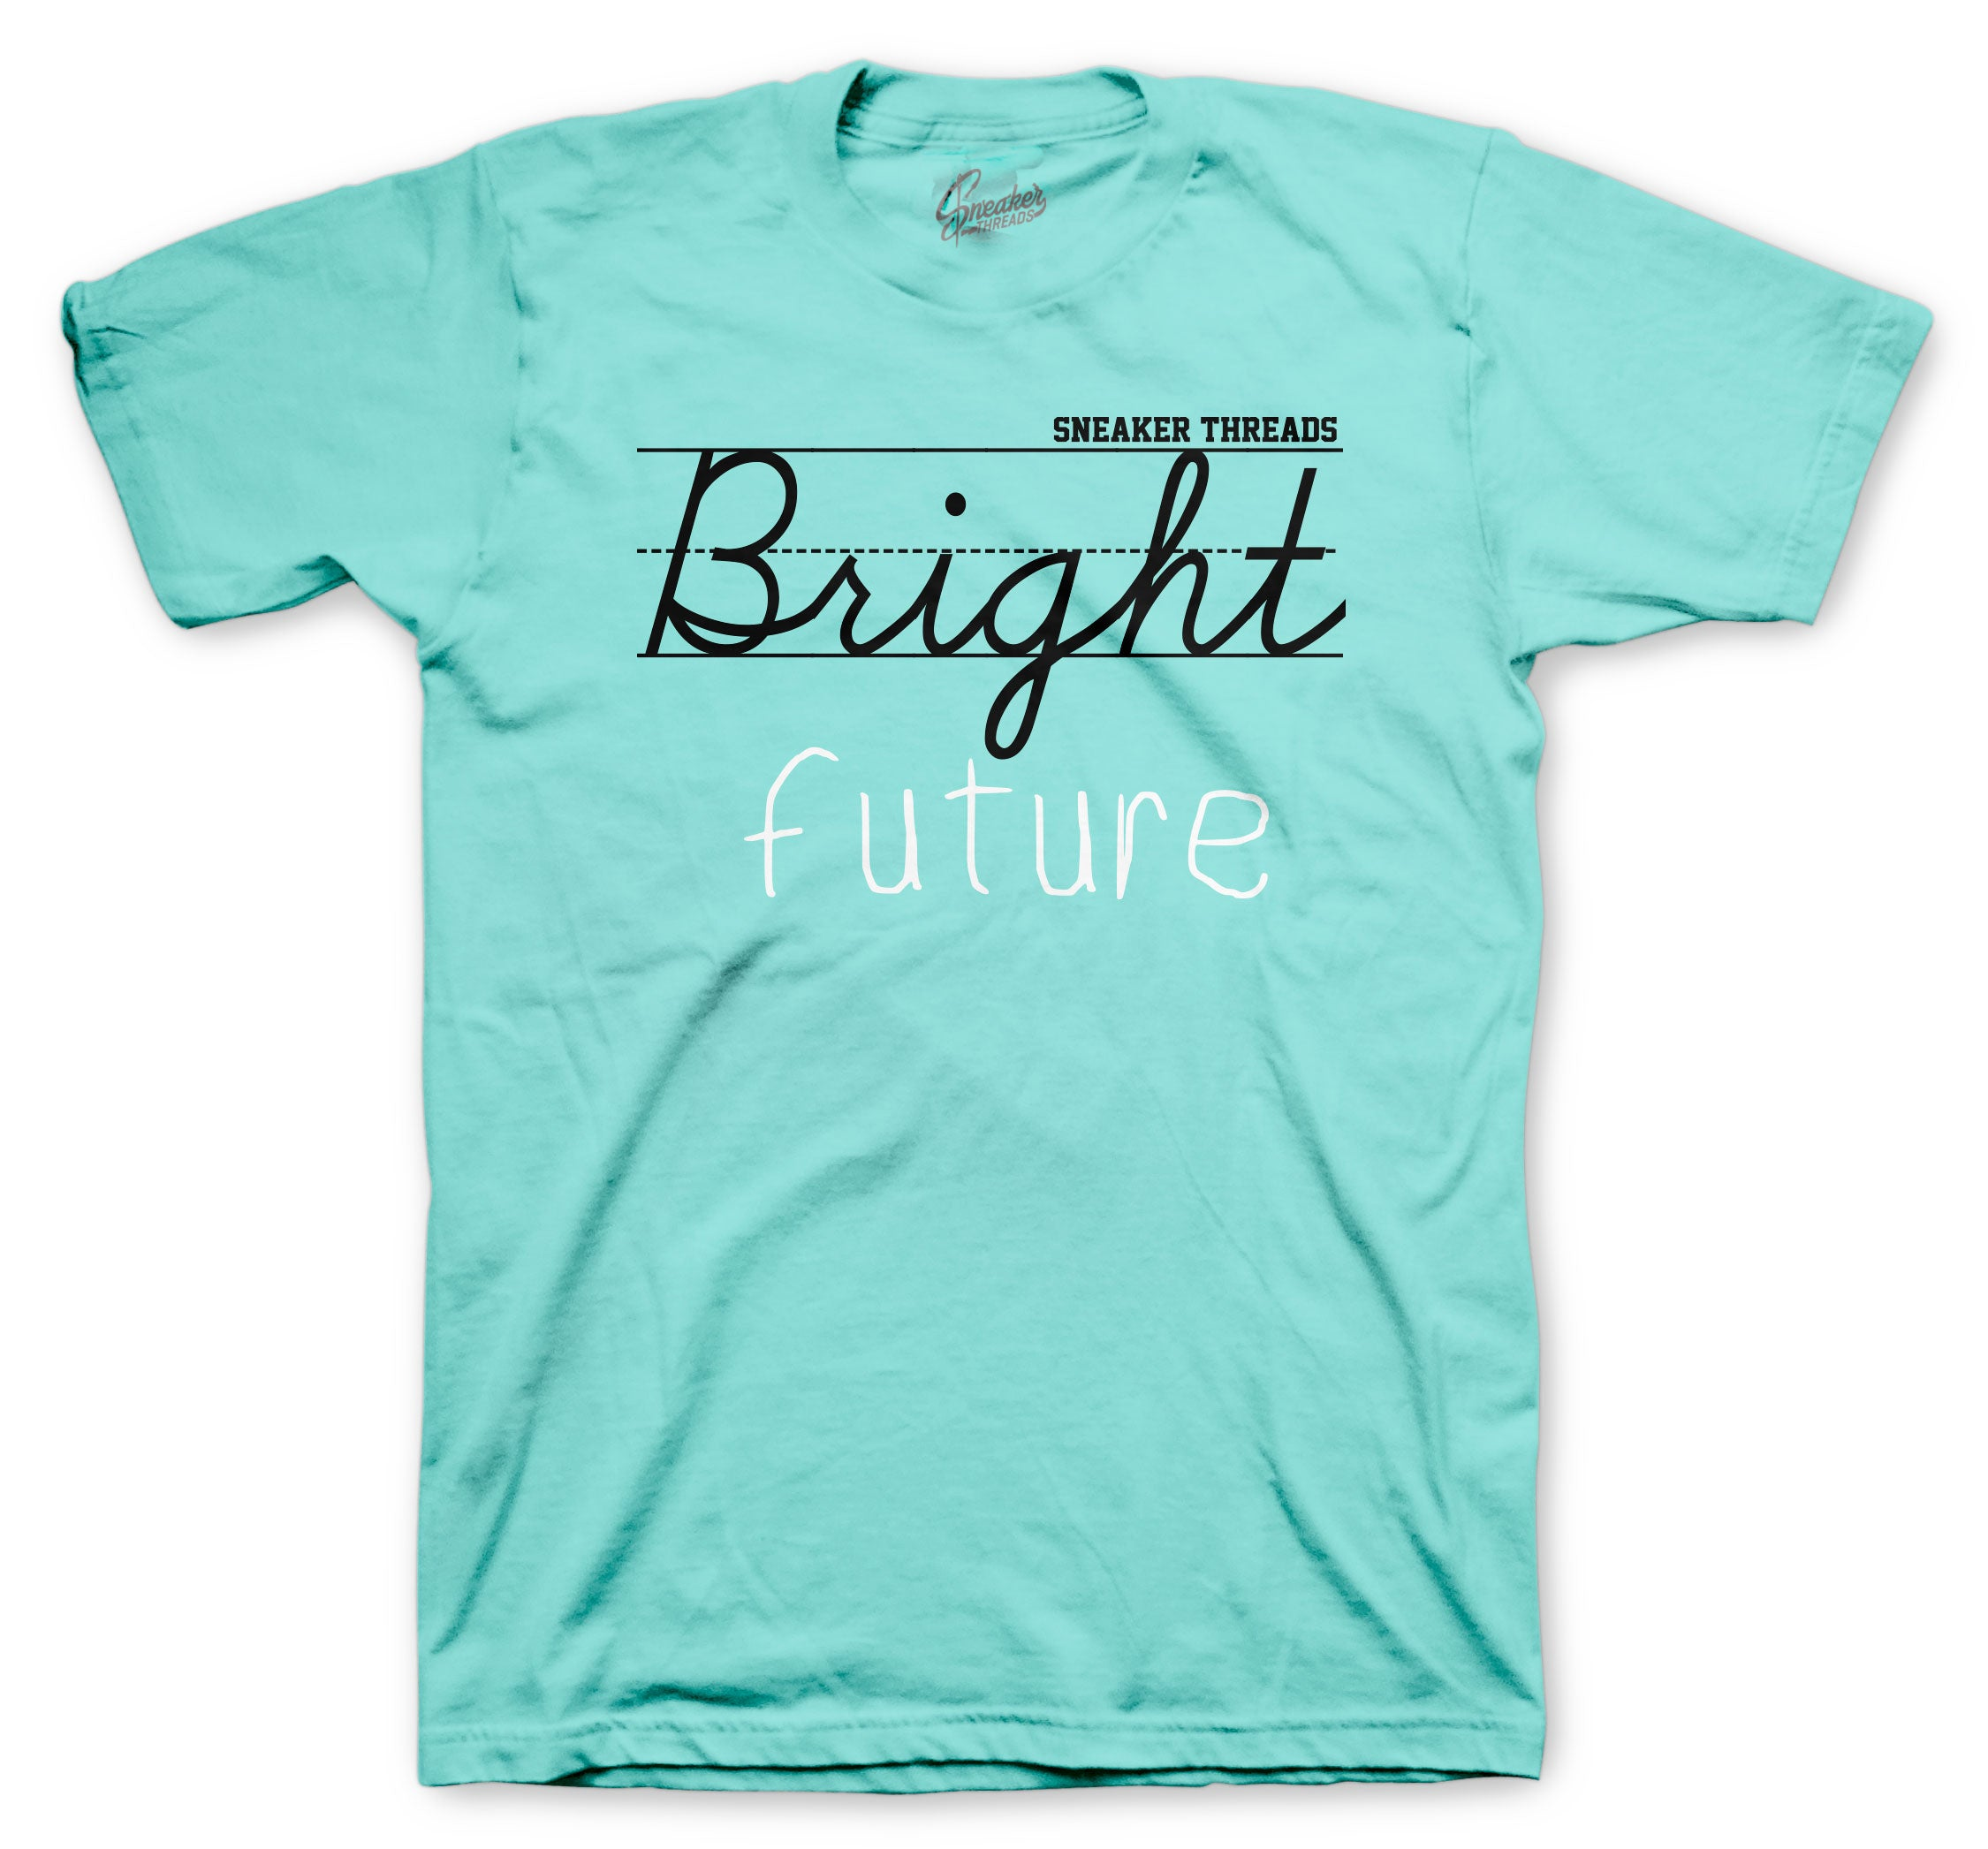 Jordan 13 Island Green Bright Future Shirt